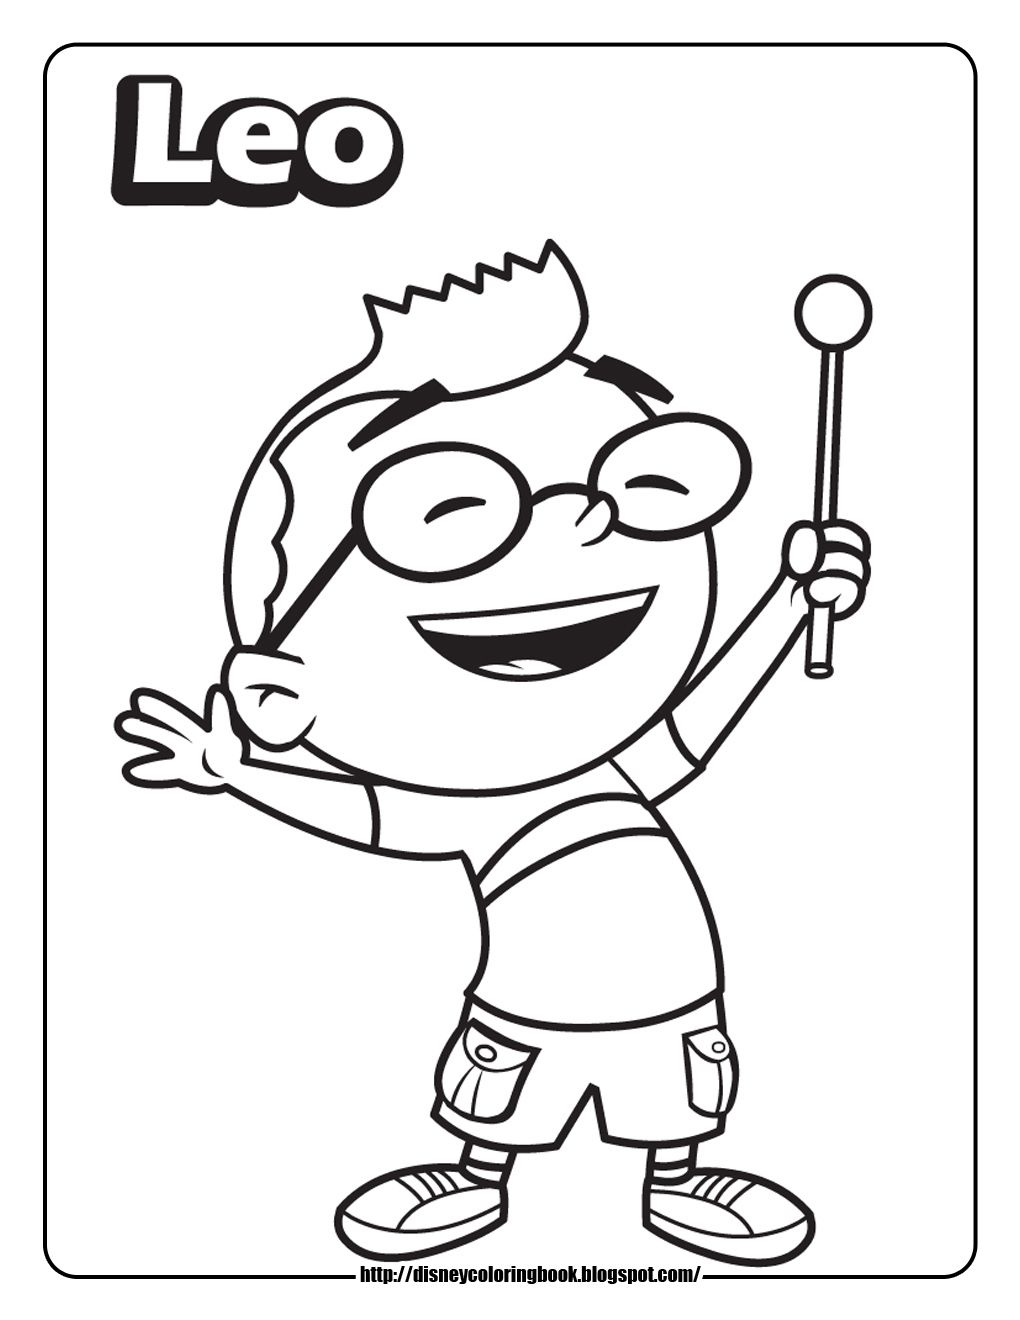 little einsteins leo coloring page sydney birthday ideas